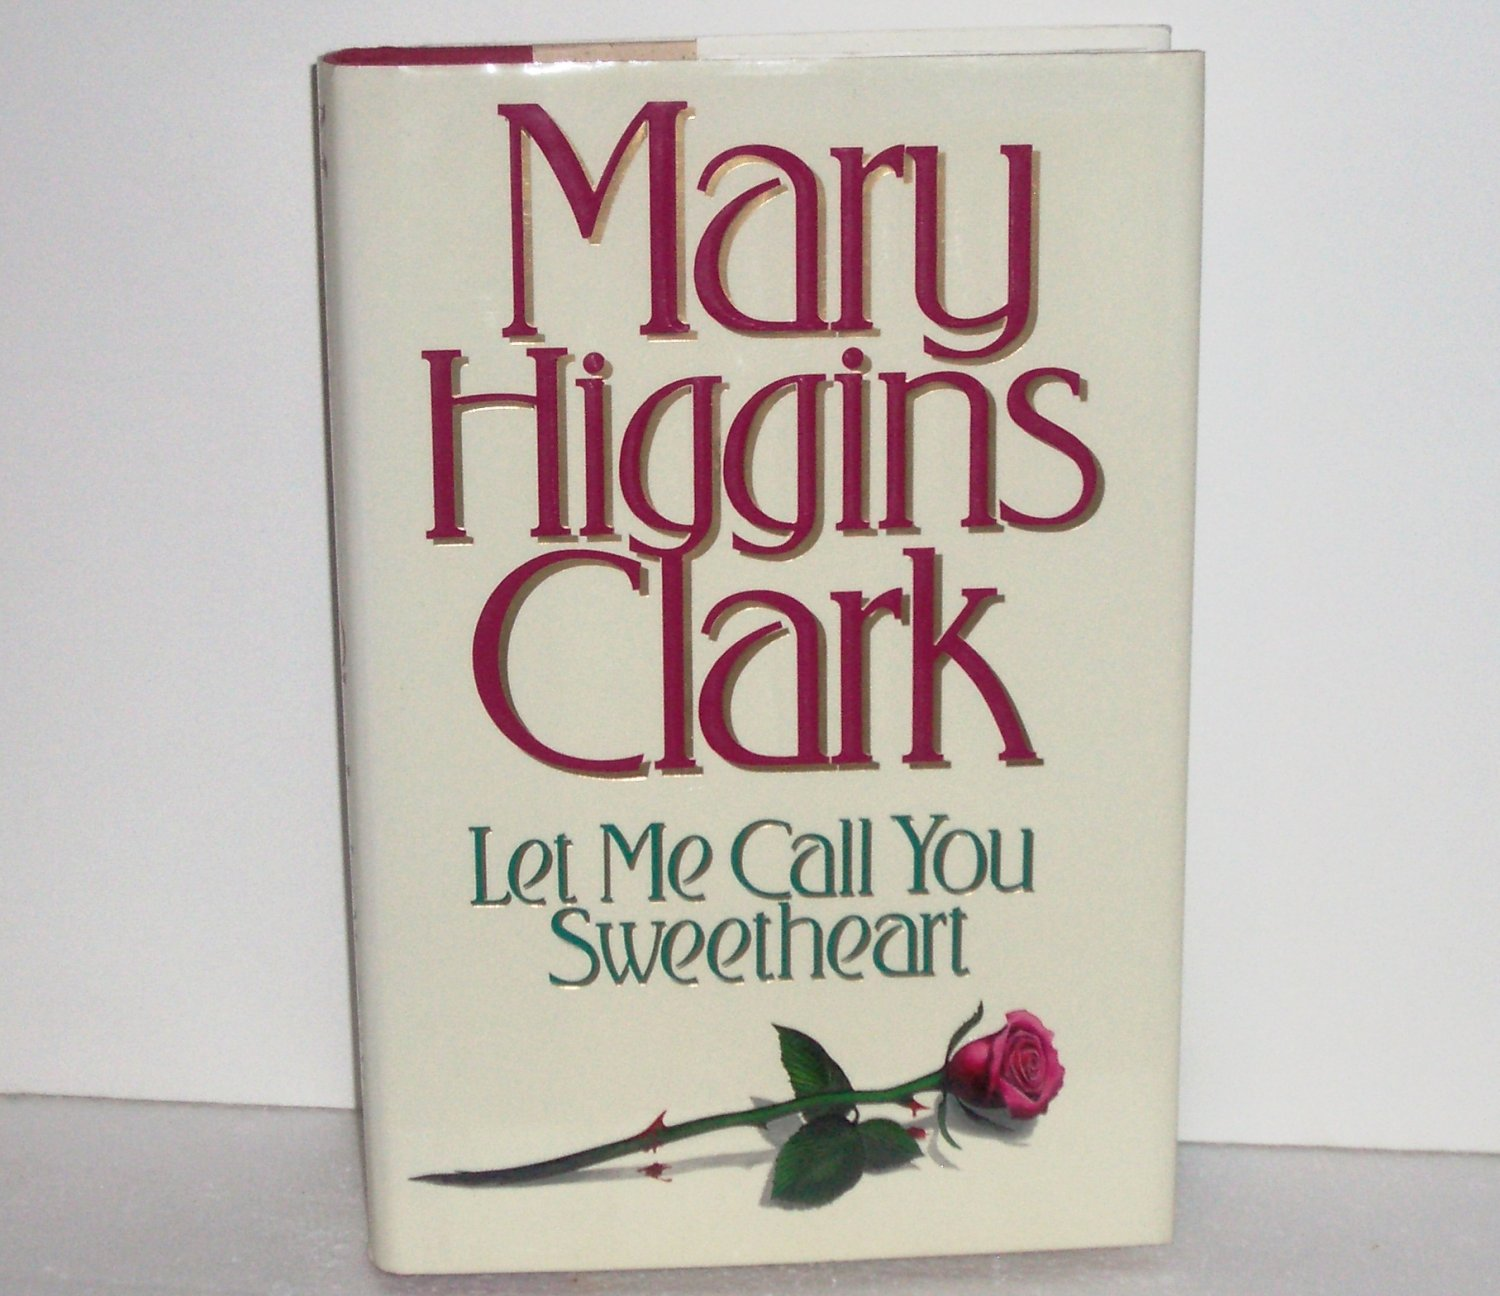 Let Me Call You Sweetheart by Mary Higgins Clark Hardcover Dust Jacket 1995